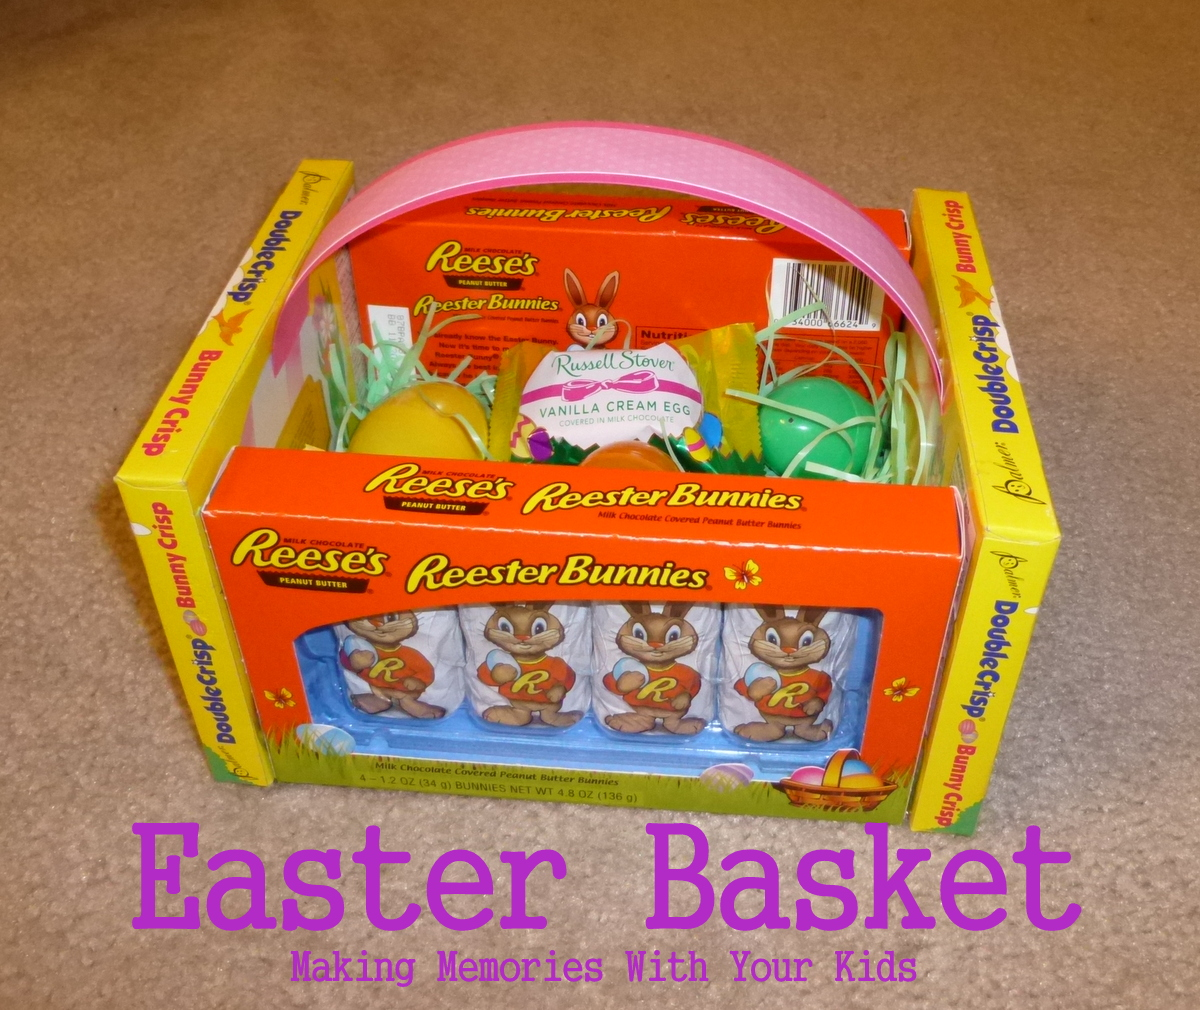 Edible easter baskets making memories with your kids edible easter baskets negle Gallery